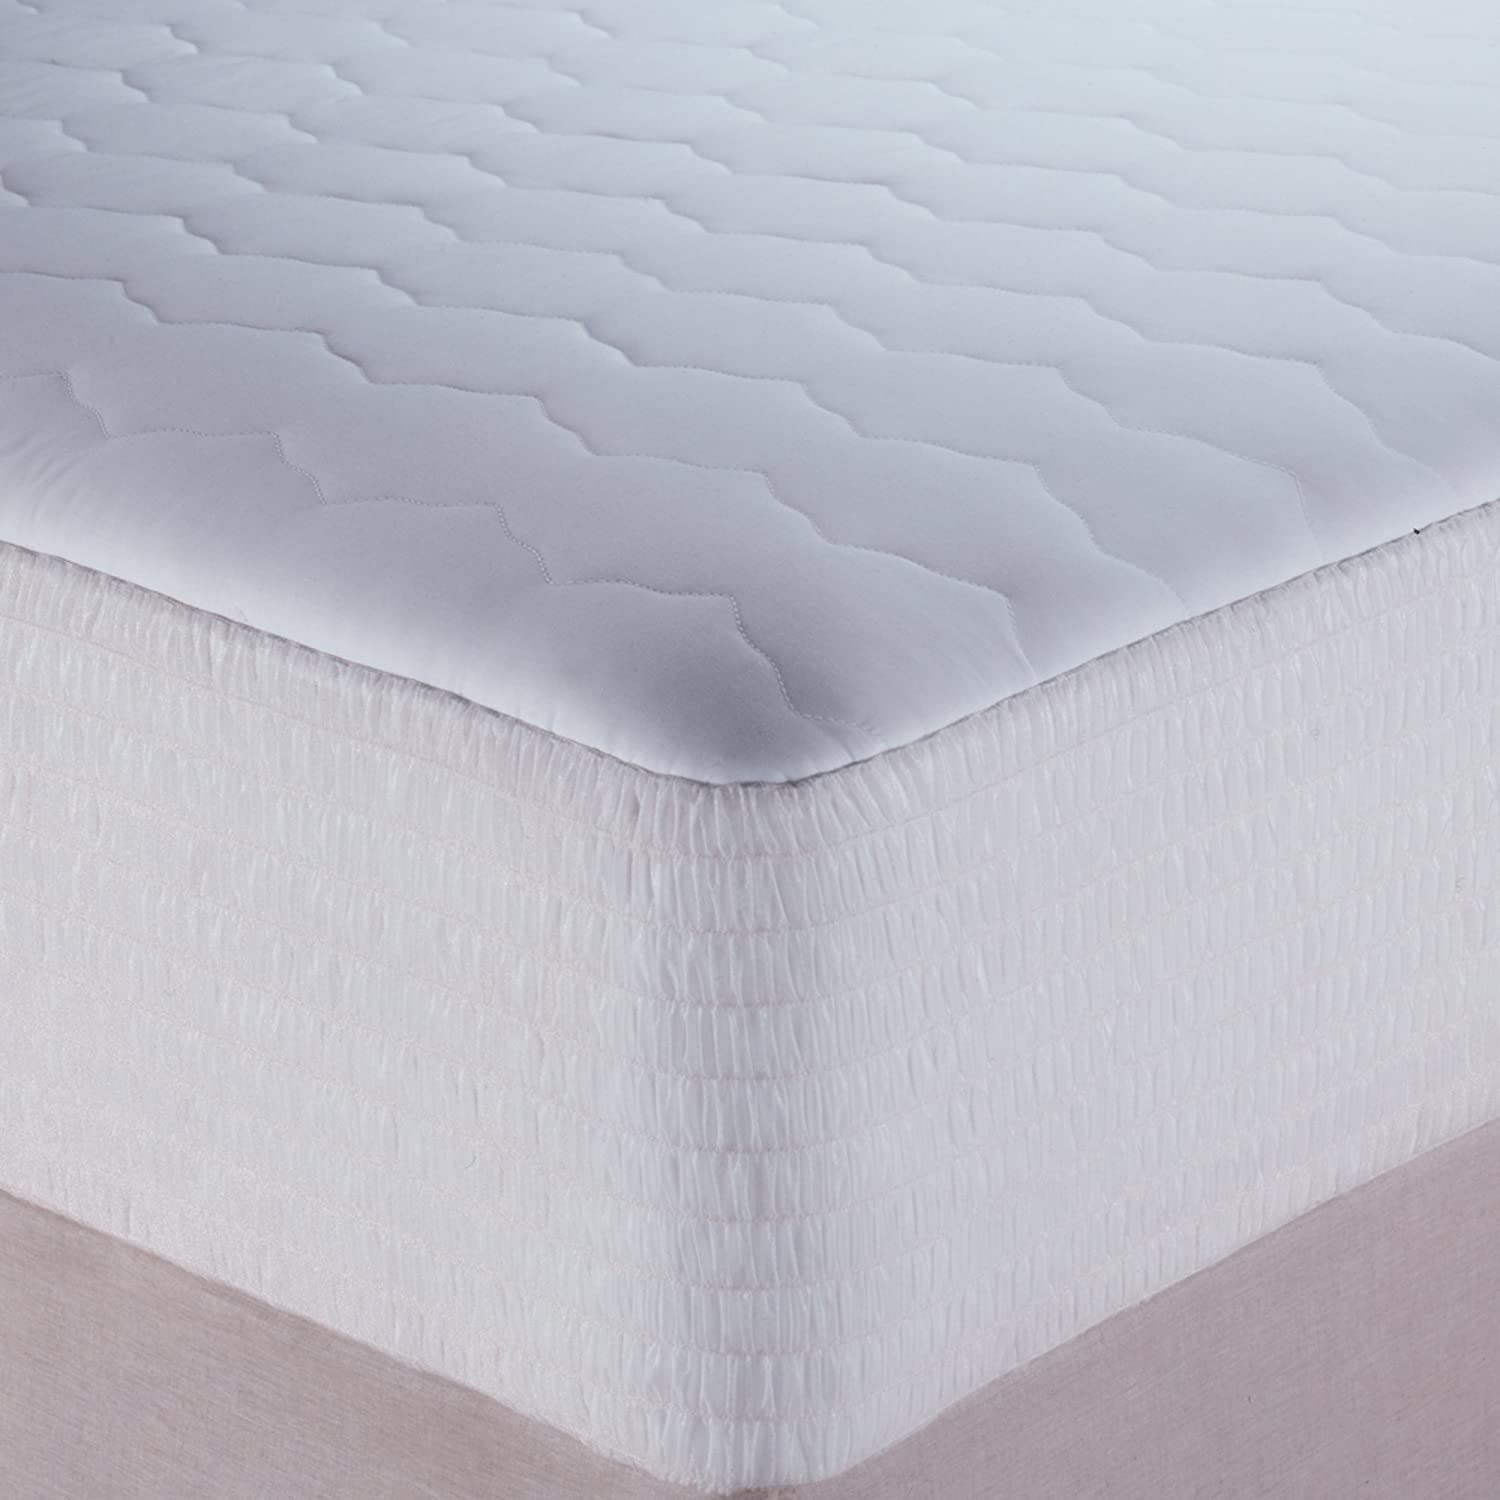 full size waterproof mattress pad Amazon.com: Beautyrest Waterproof Mattress Pad, Cotton Blend, Full  full size waterproof mattress pad